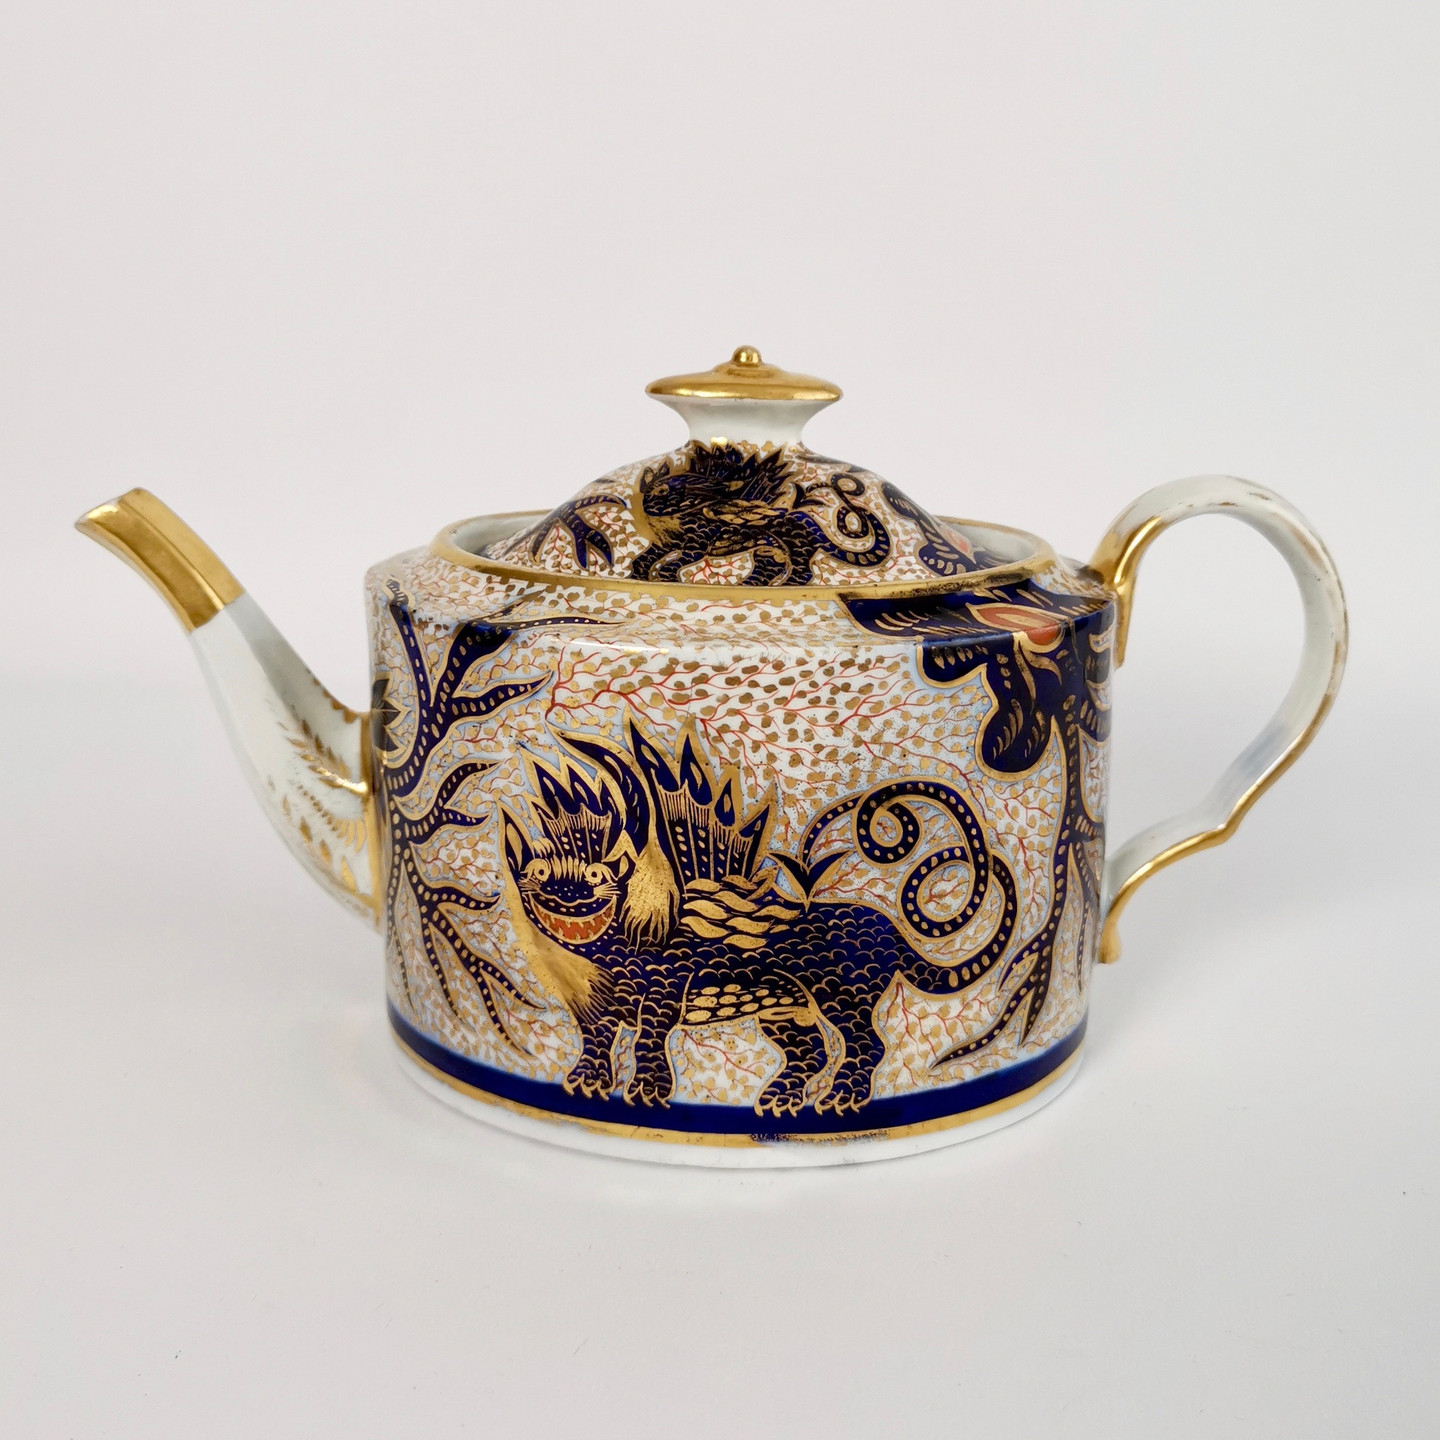 https://www.gentlerattleofchina.com/product-page/thomas-rose-coalport-tea-service-blue-dragon-patt-352-ca-1800